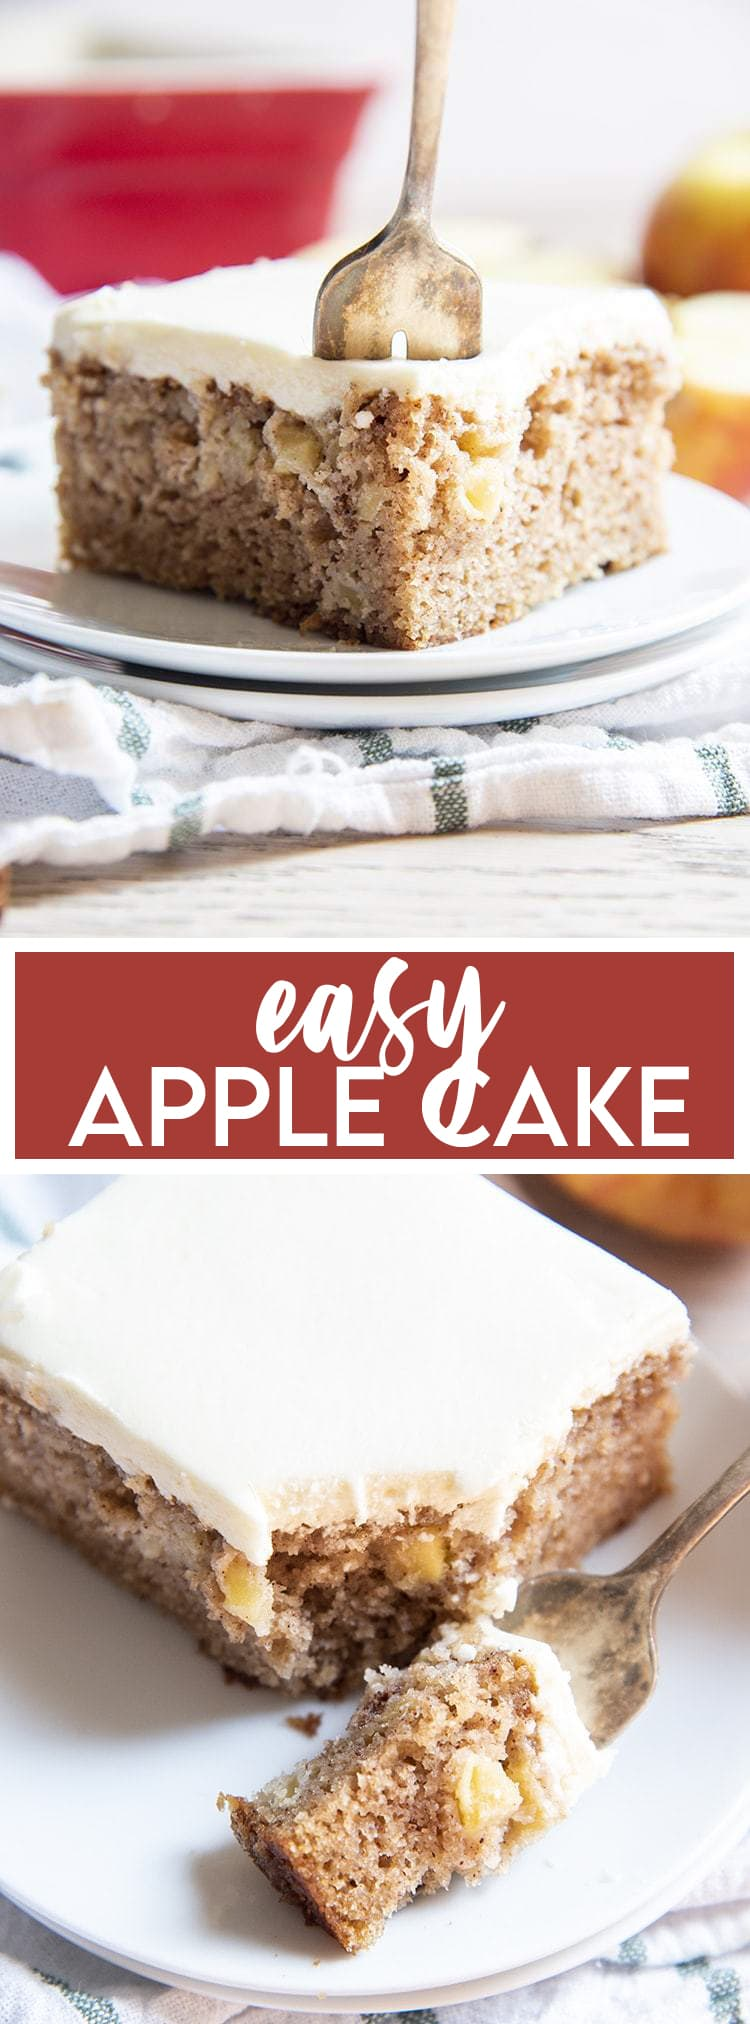 Twp photos of apple cake on a white plate with text overlay for pinterest.